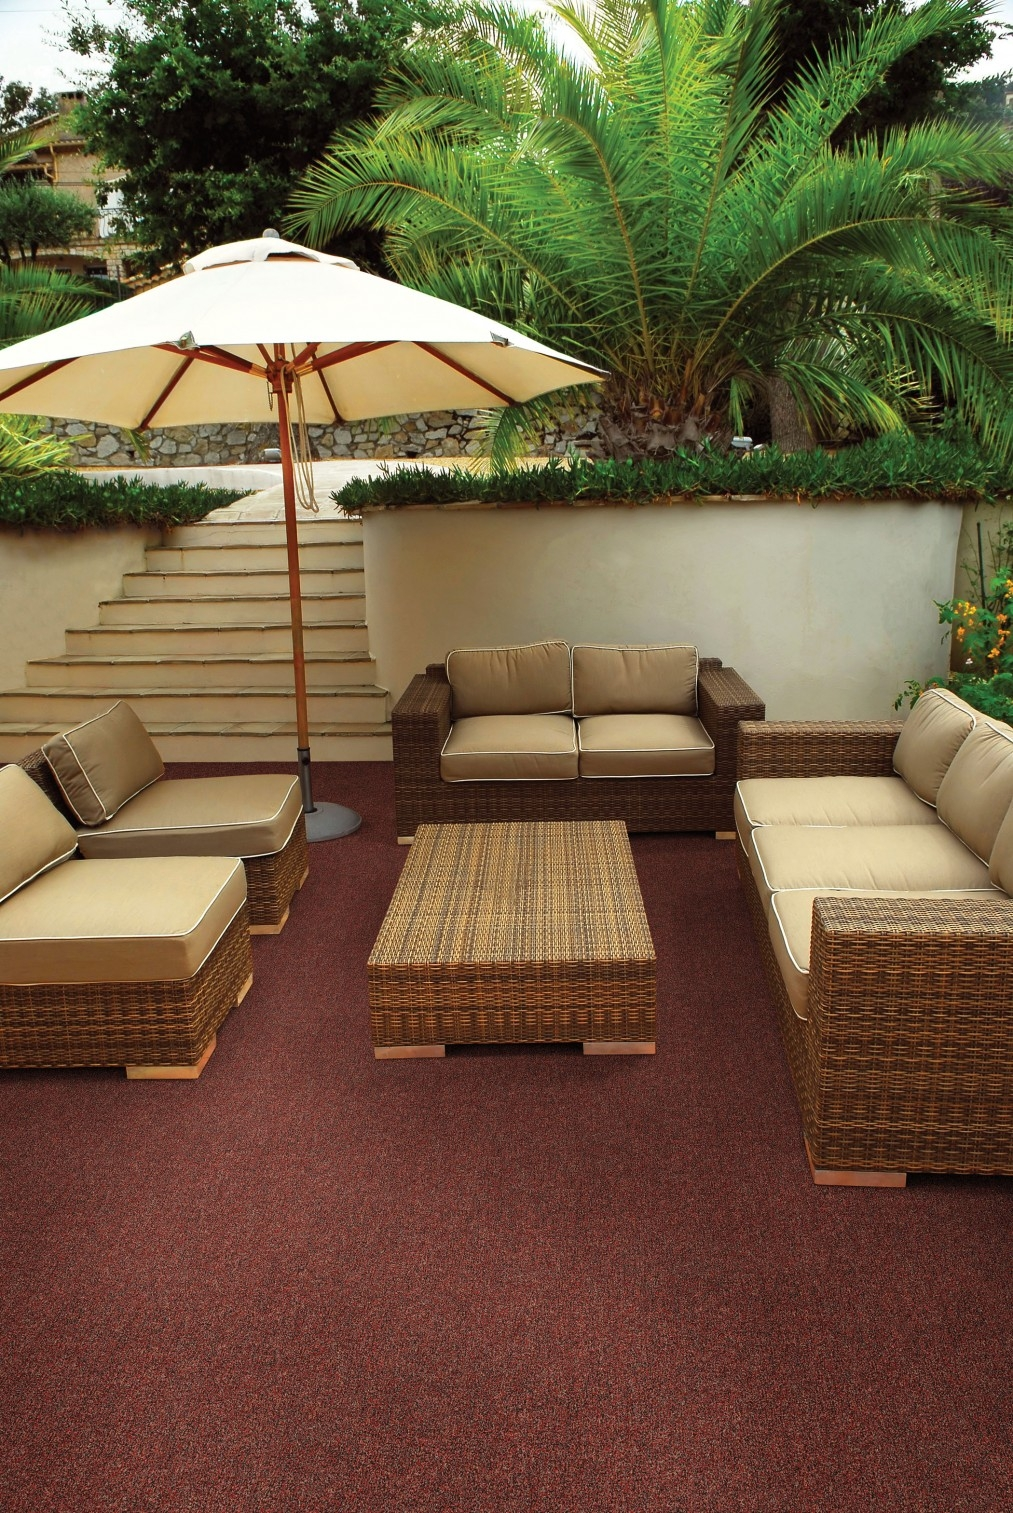 Outdoor Carpets For Decks Or Patios Carpet Vidalondon In Outside Carpets (Image 6 of 15)